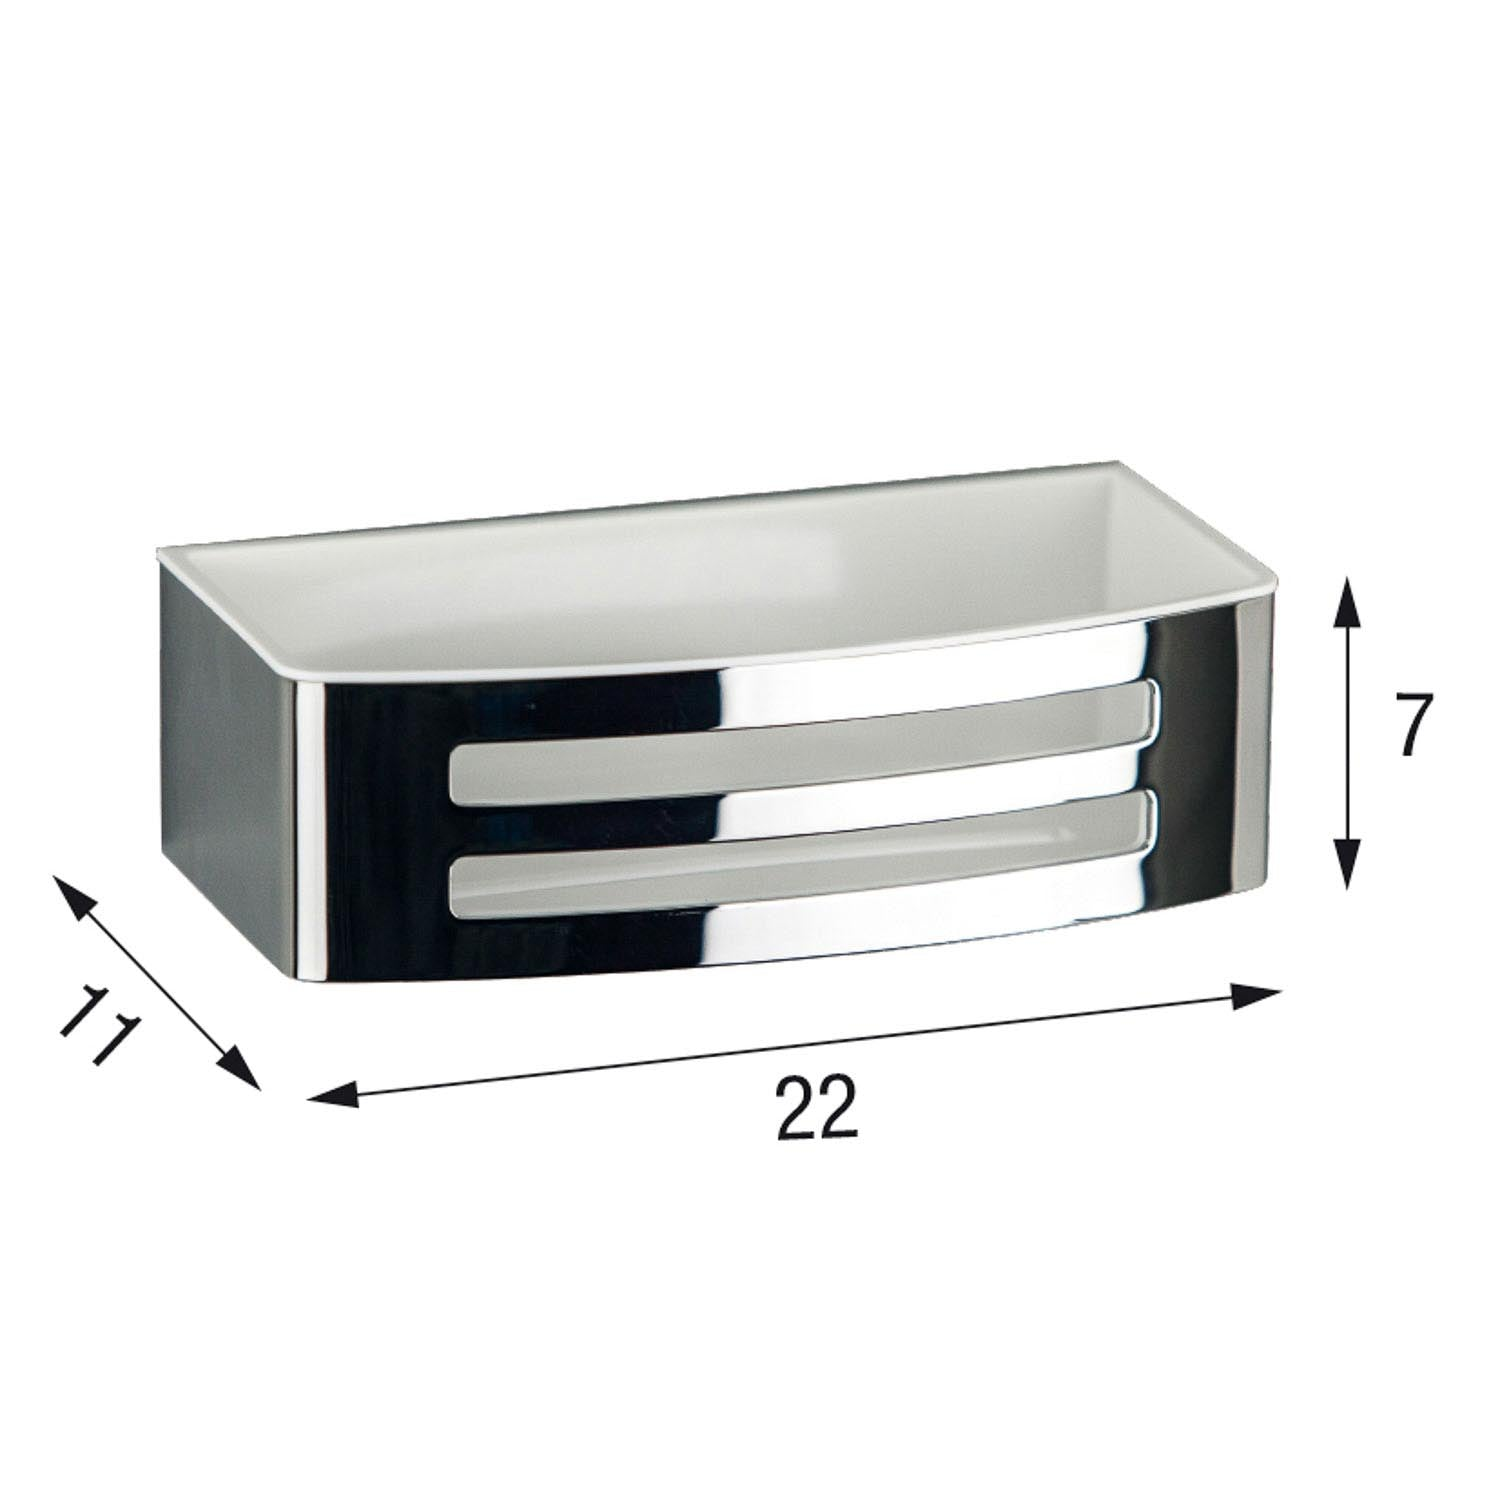 Easyclean Shower Basket with a chrome finish and white removable insert dimensional drawing